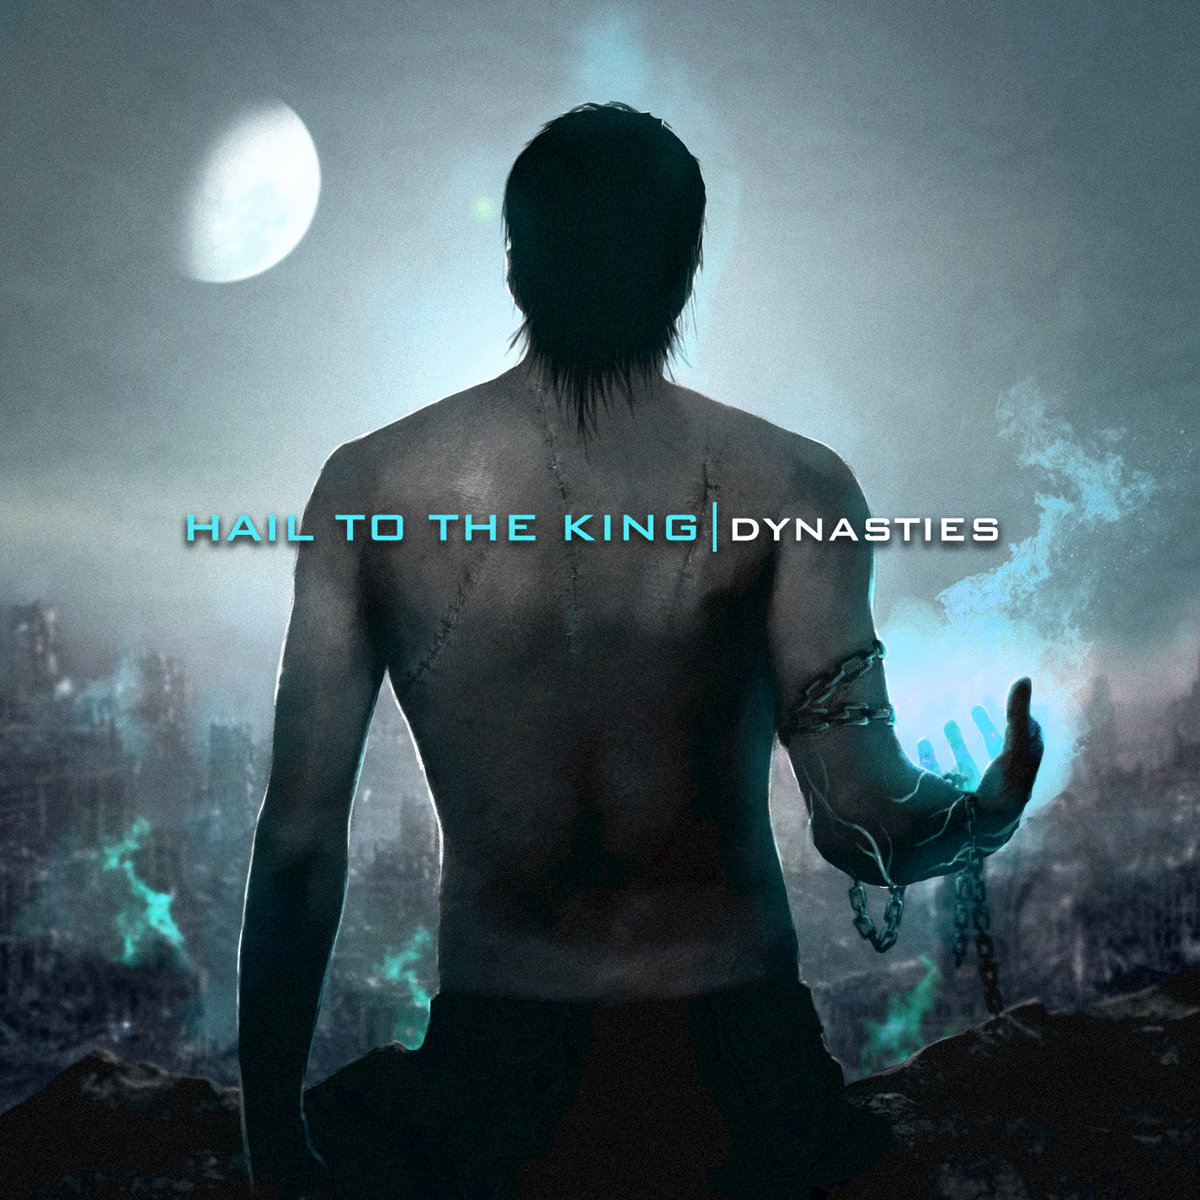 Dynasties hail to the king by hail to the king voltagebd Gallery